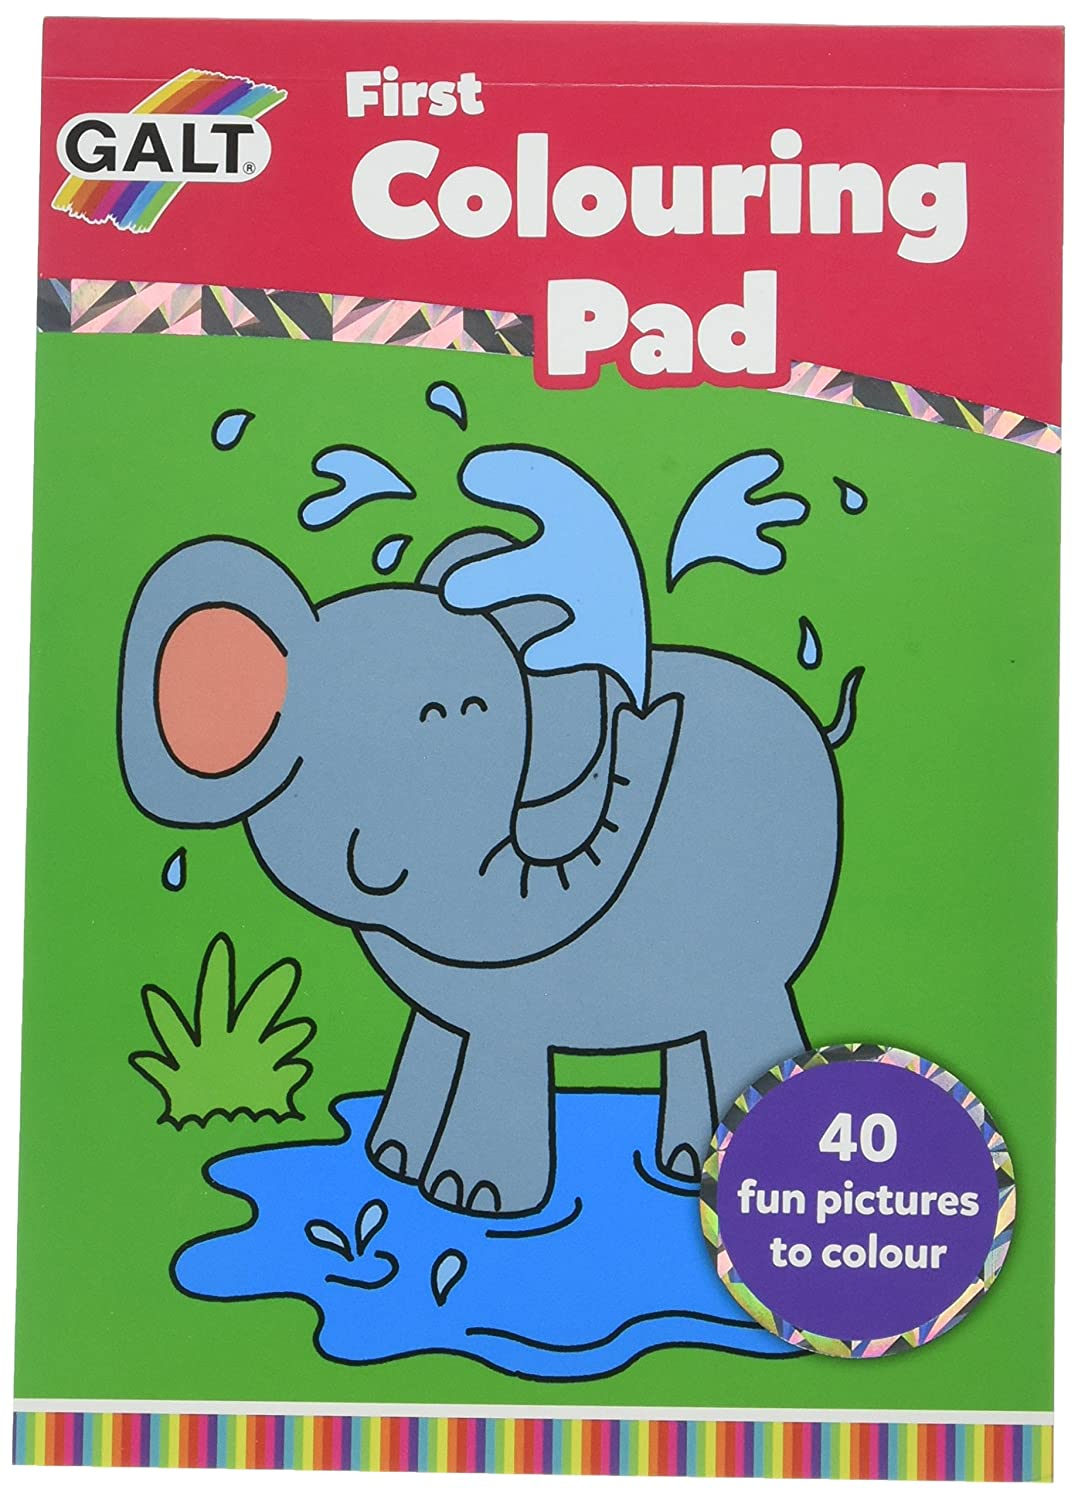 Galt Toys First Colouring Pad: Amazon.co.uk: Toys & Games